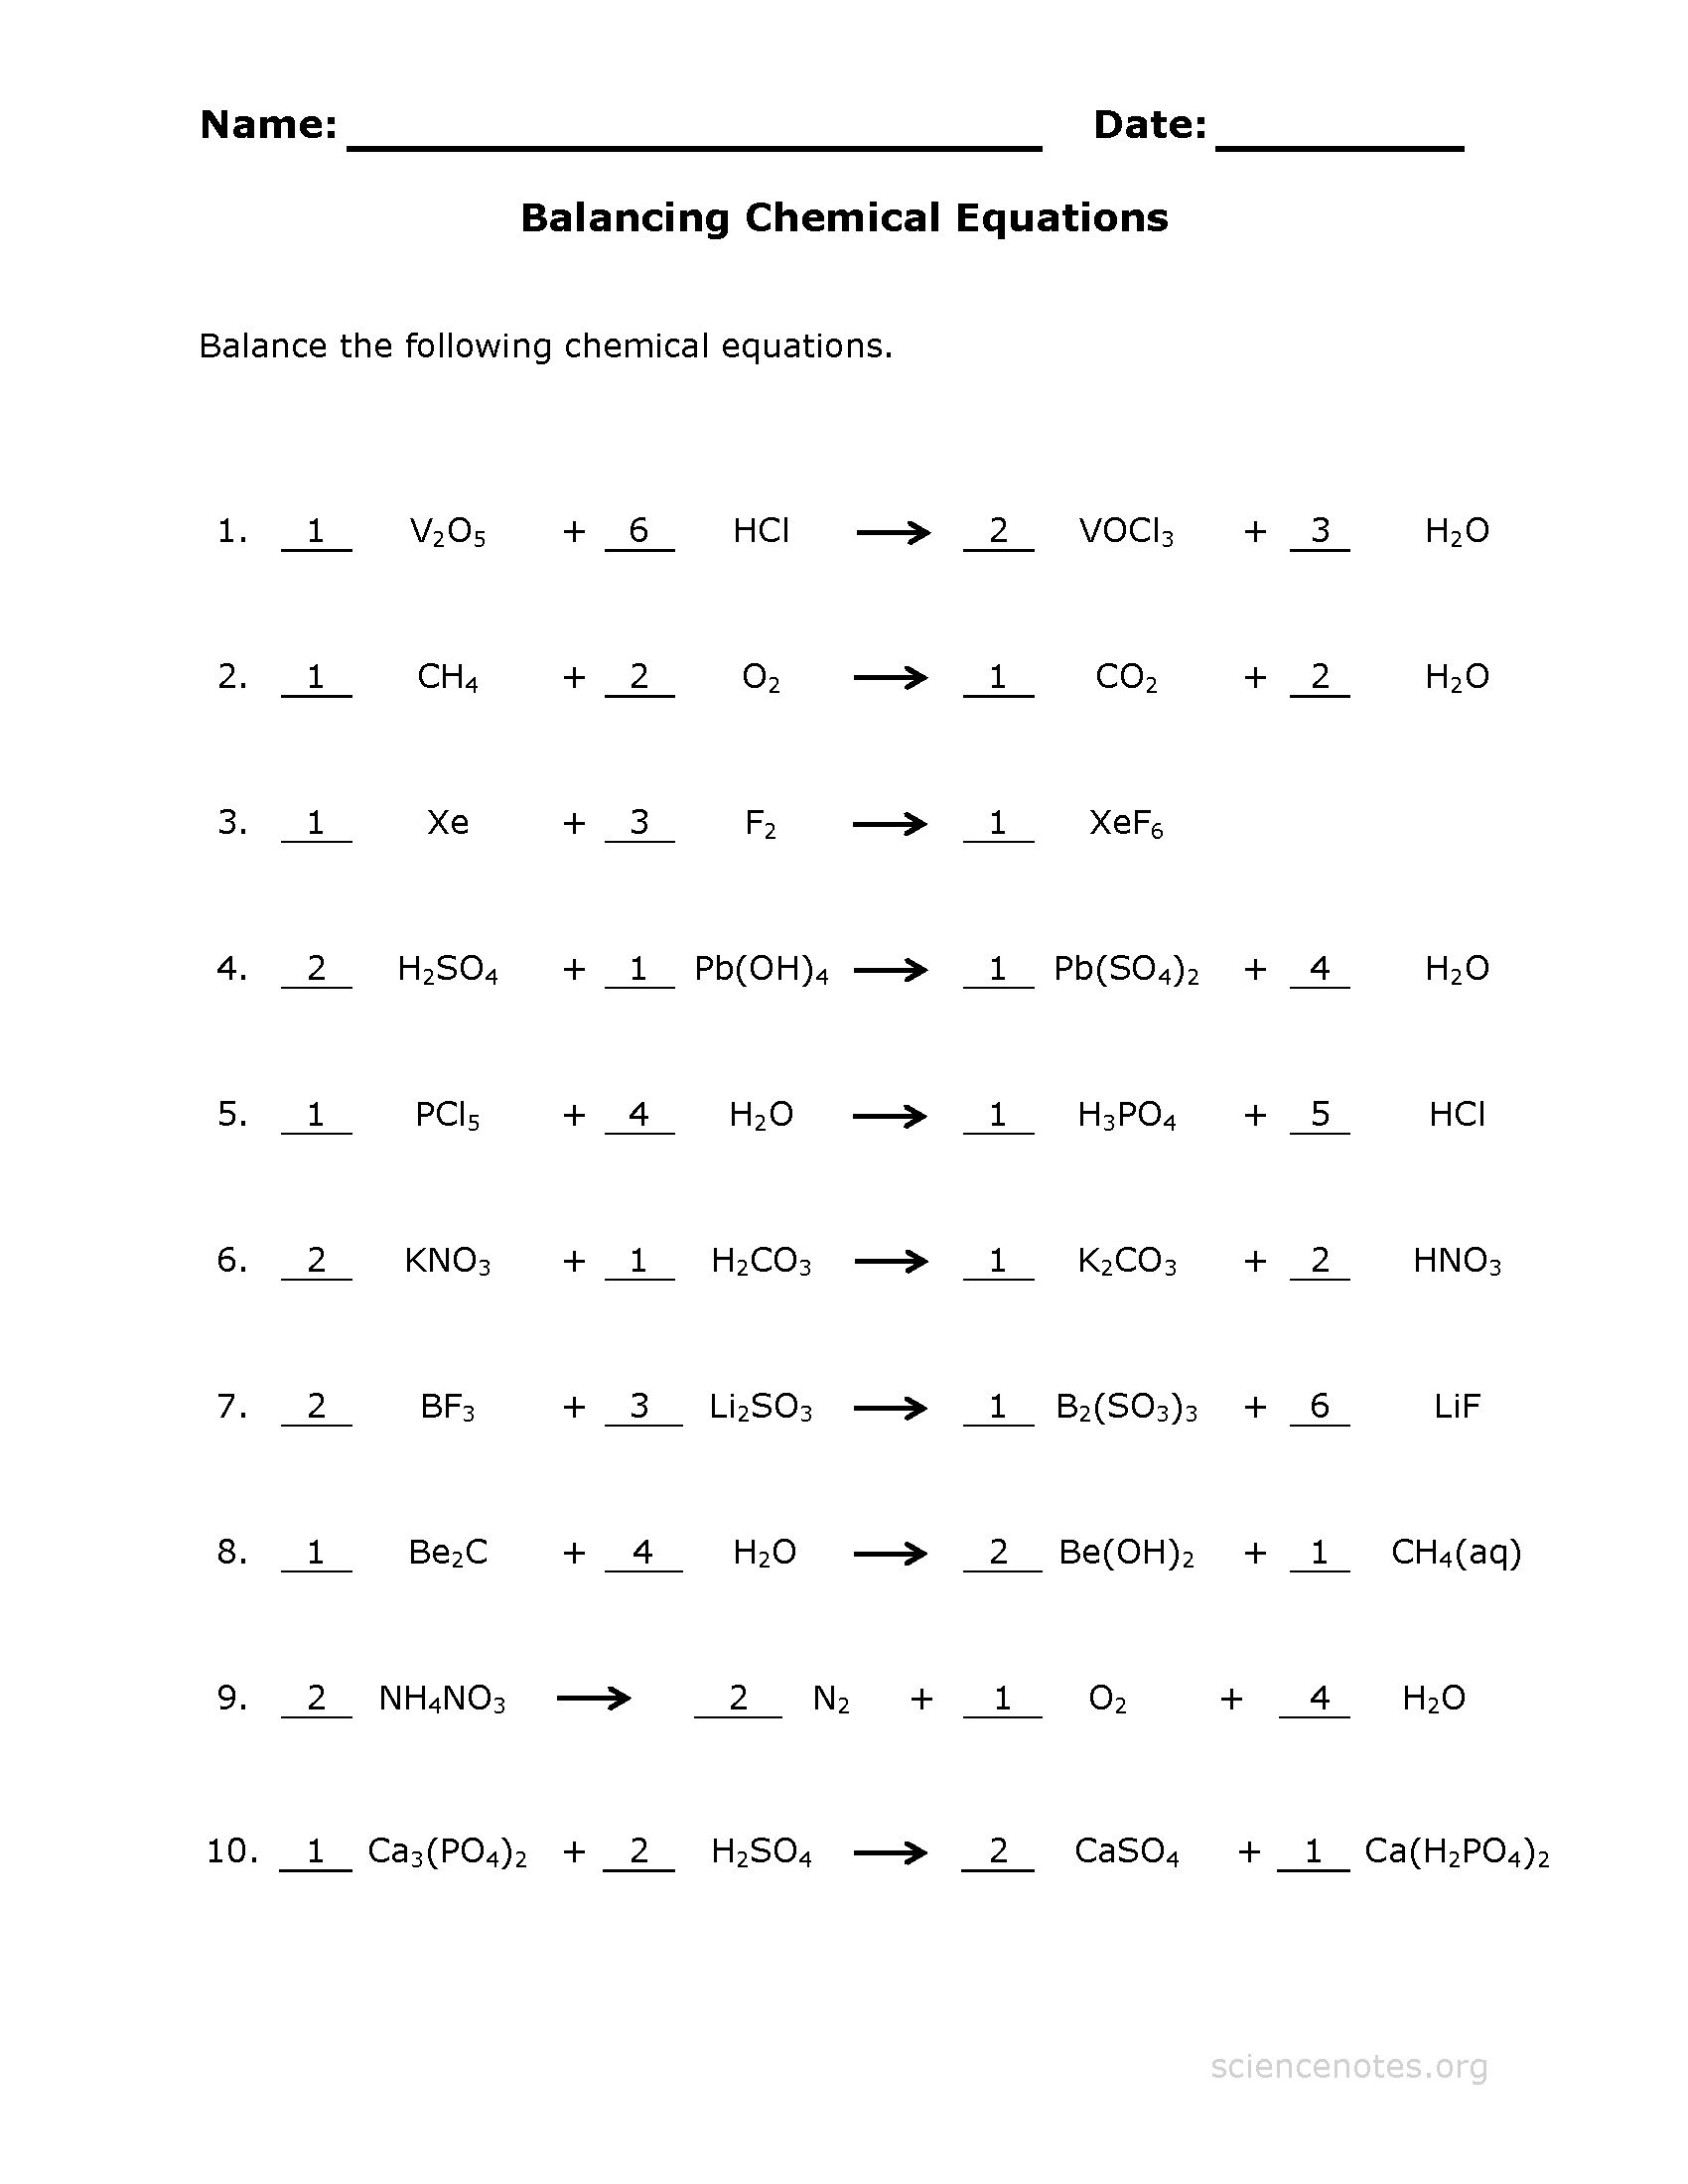 Chemistry Periodic Table Worksheet 2 Answer Key